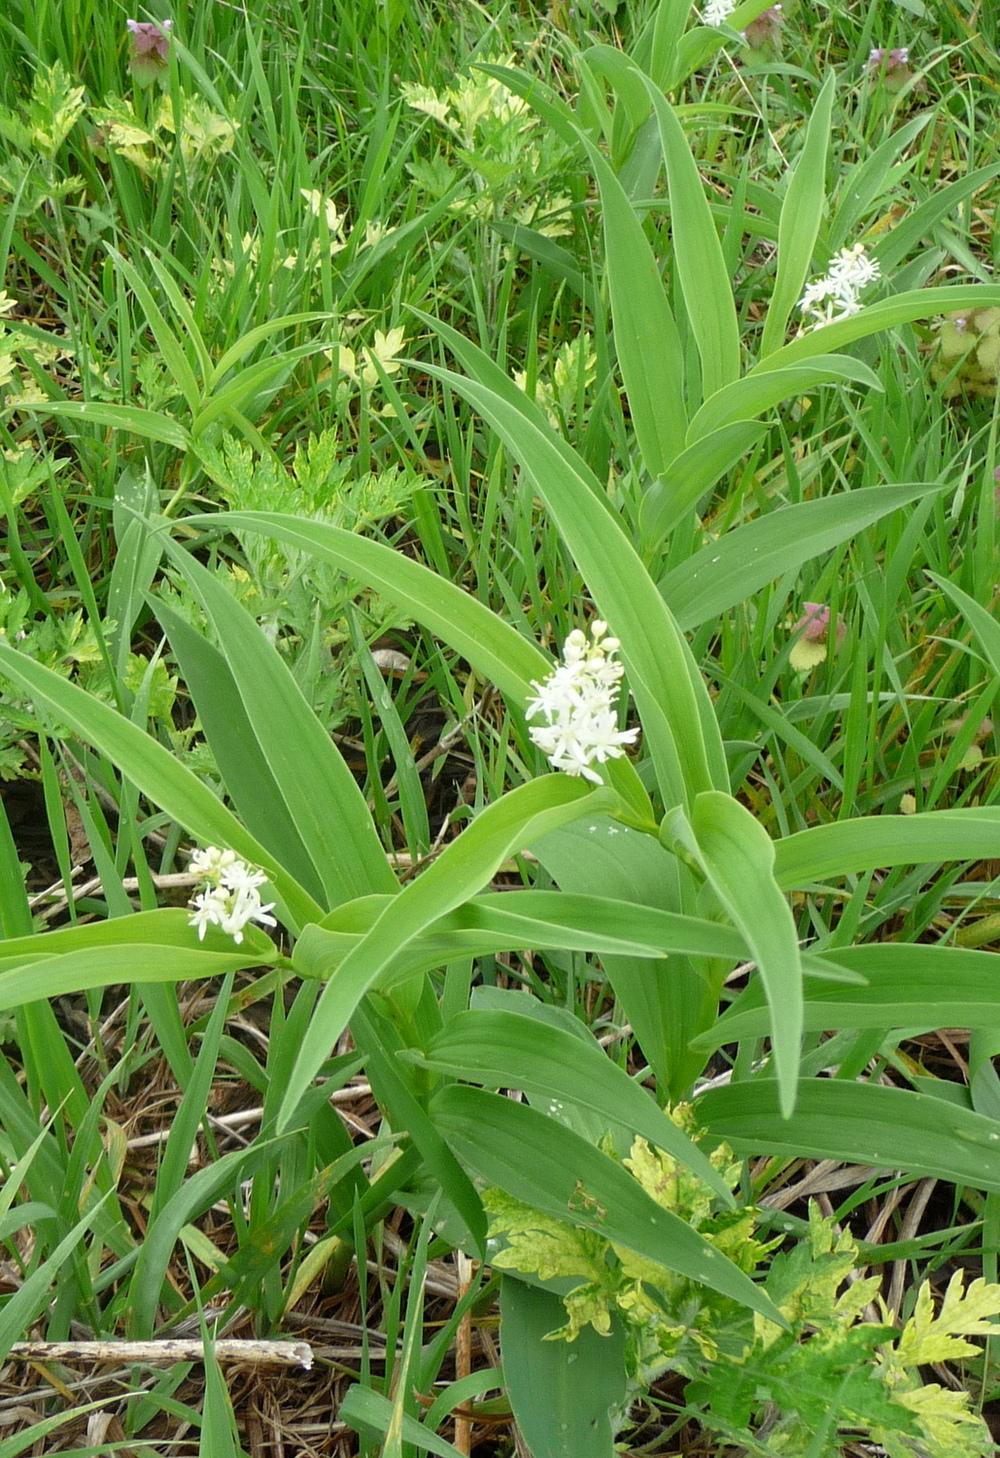 Photo of Maianthemums (Maianthemum) uploaded by gardengus